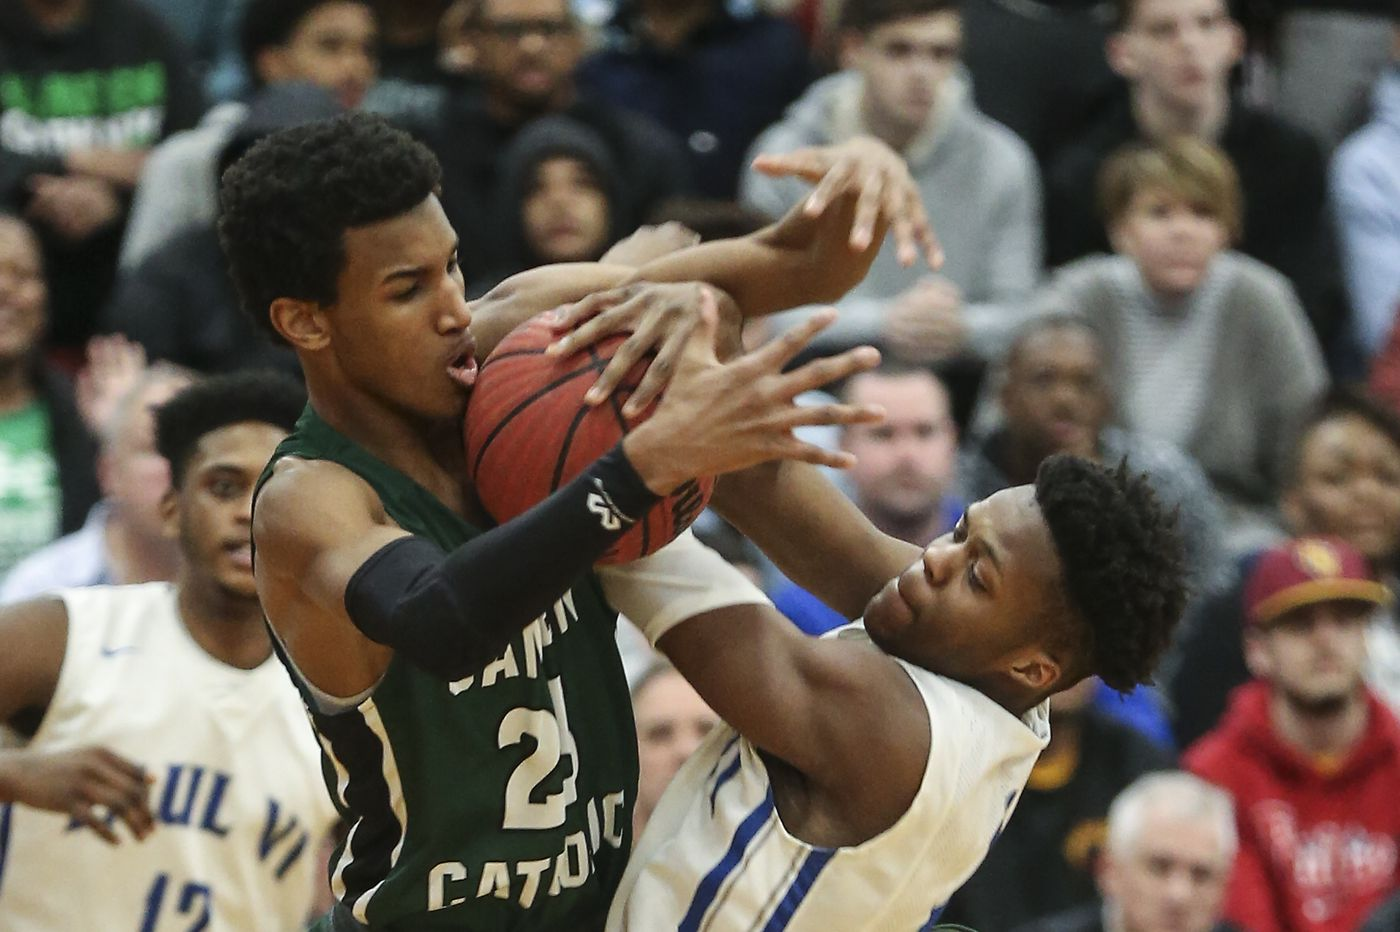 Basketball recruiting: Camden Catholic's Zach Hicks gets the once over from Temple coach Aaron McKie